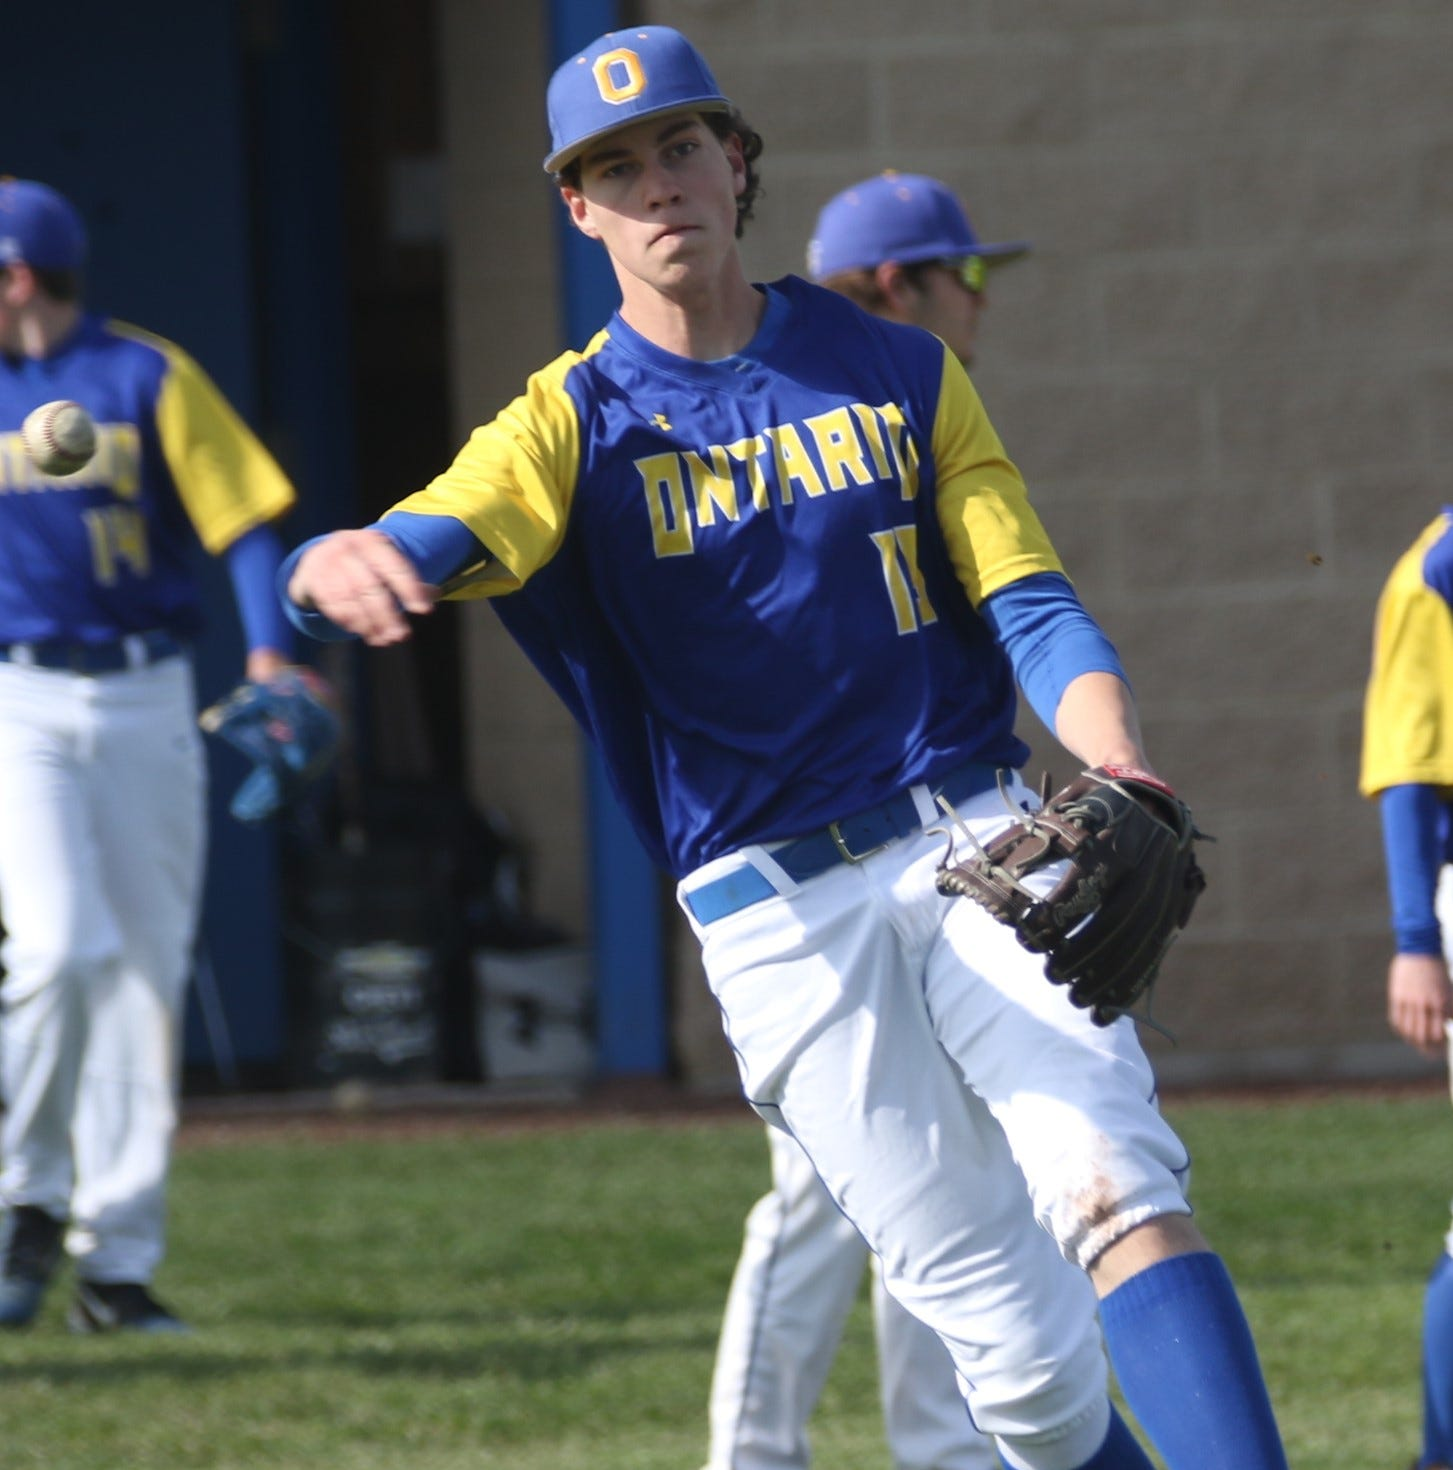 Walk-off Warriors: Ontario claims share of MOAC title with dramatic win over Galion